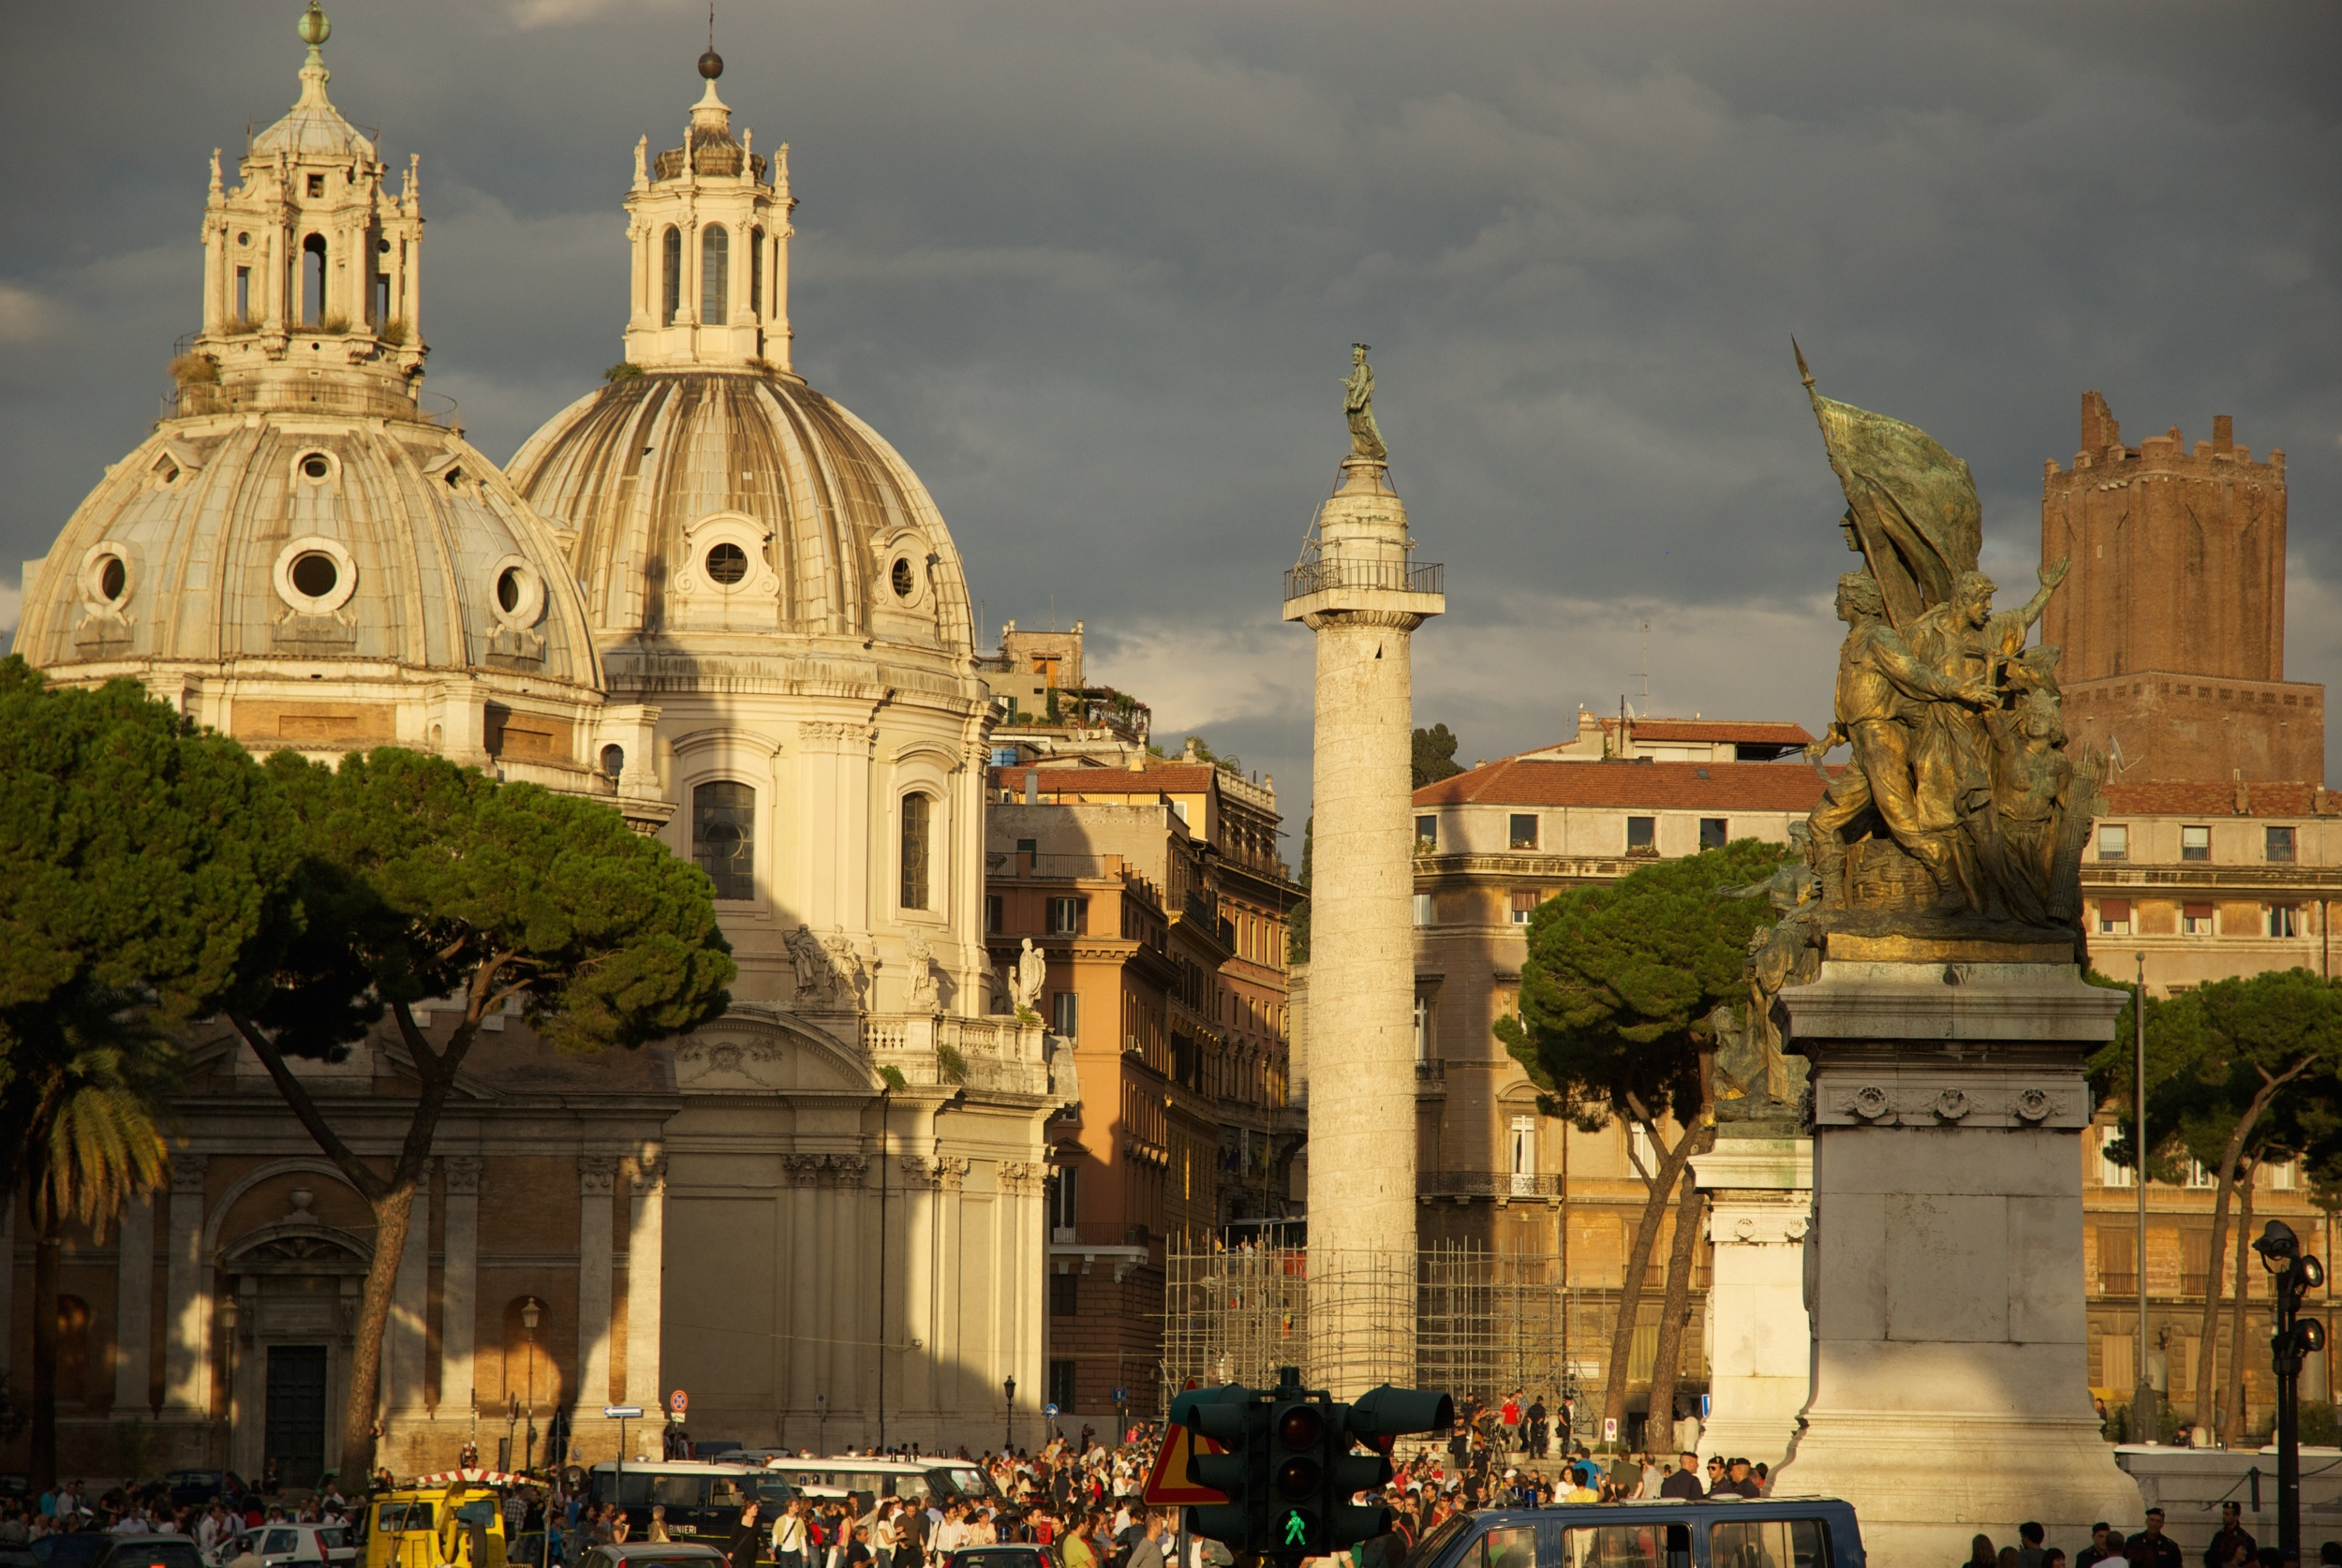 Afternoon Light in Rome